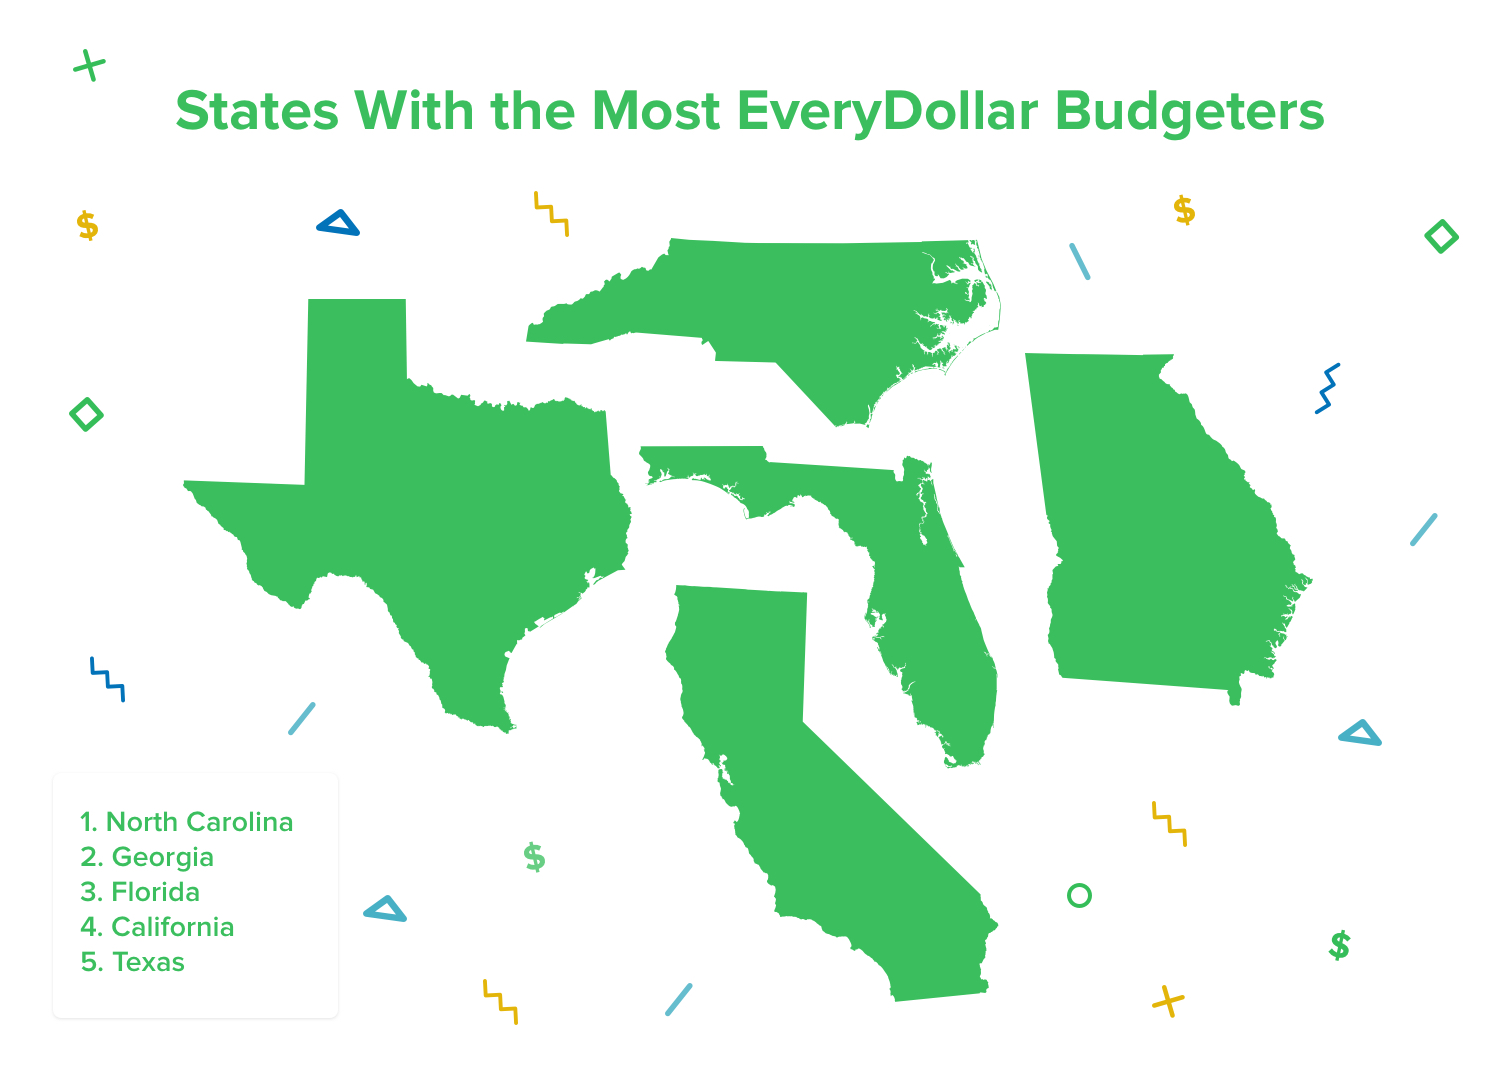 Top 5 States With EveryDollar Budgeters